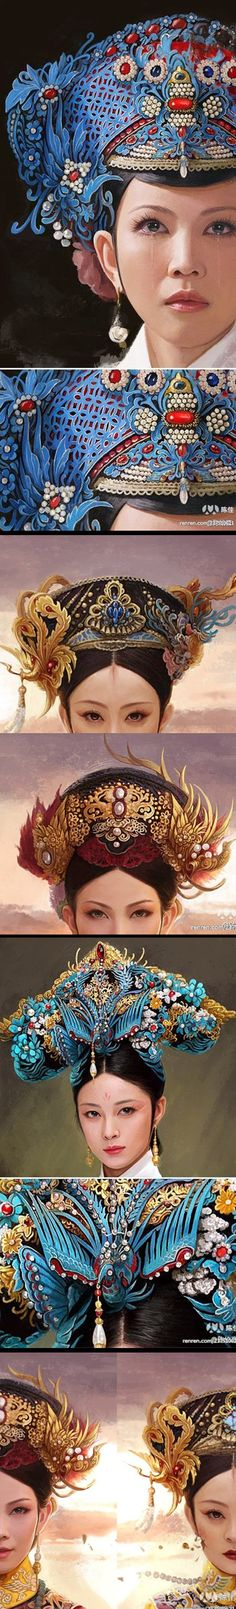 "# Qing Dynasty Imperial headdresses by Boyan Chen - Inspired by the Chinese TV drama ""The Legend of Zhen Huan"" (后宫甄嬛传), which is itself adapted from a novel based upon the life of Qing Empress Xiaoshengxian (1693-1777)"